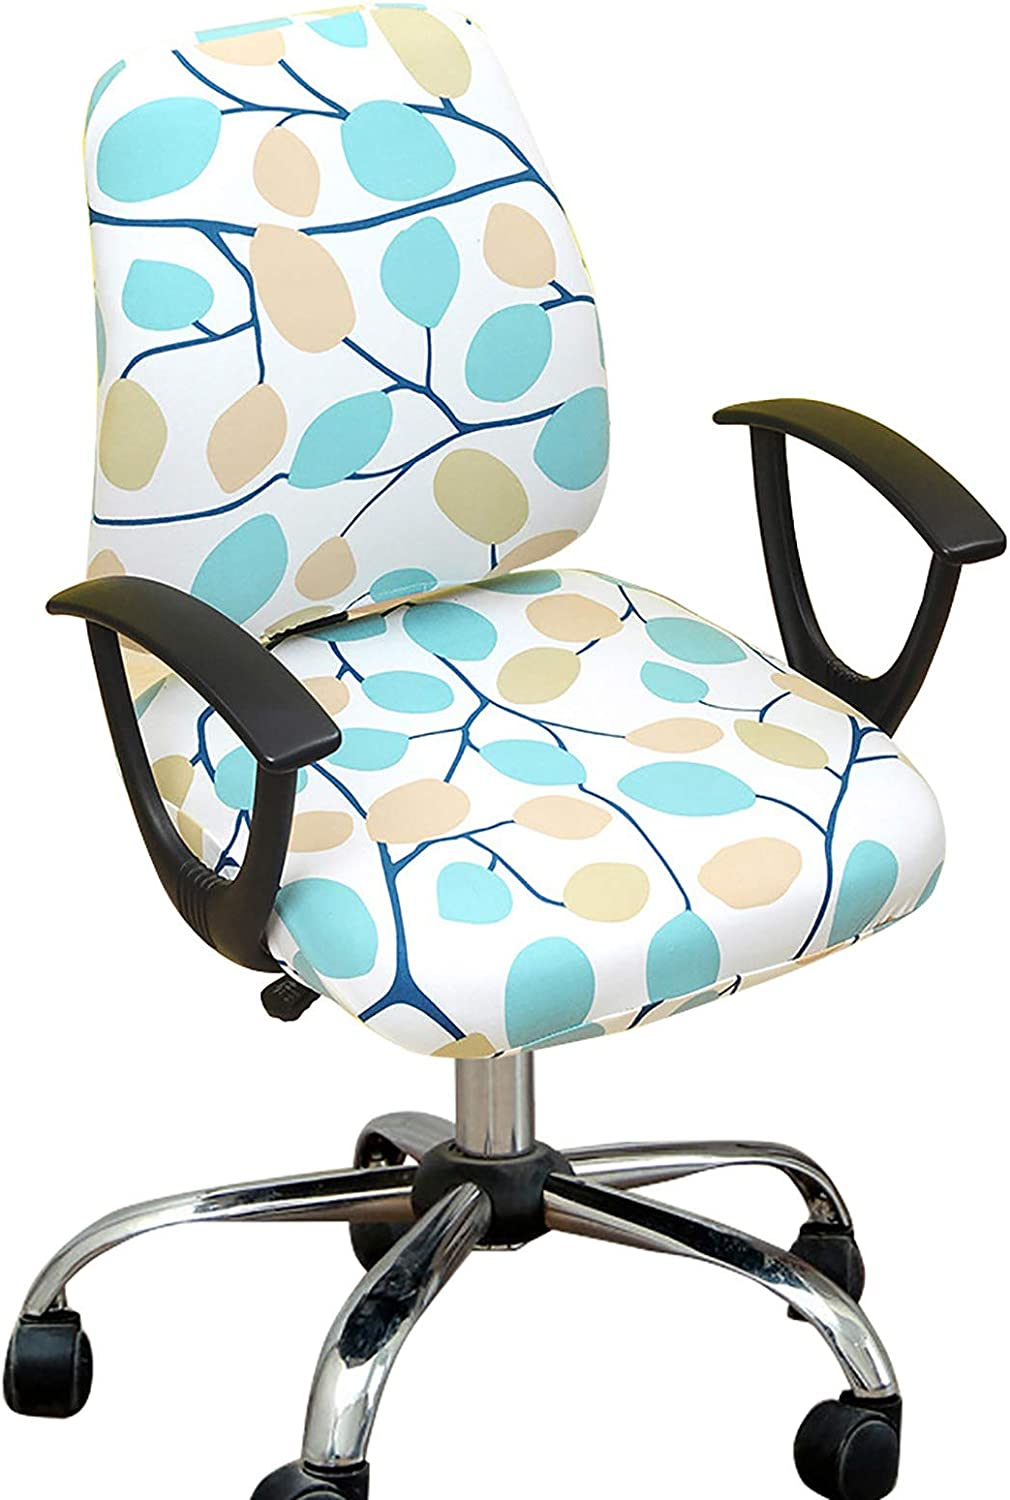 Melaluxe Computer Office Chair Cover - Protective & Stretchable Universal Chair Covers Stretch Rotating Chair Slipcover